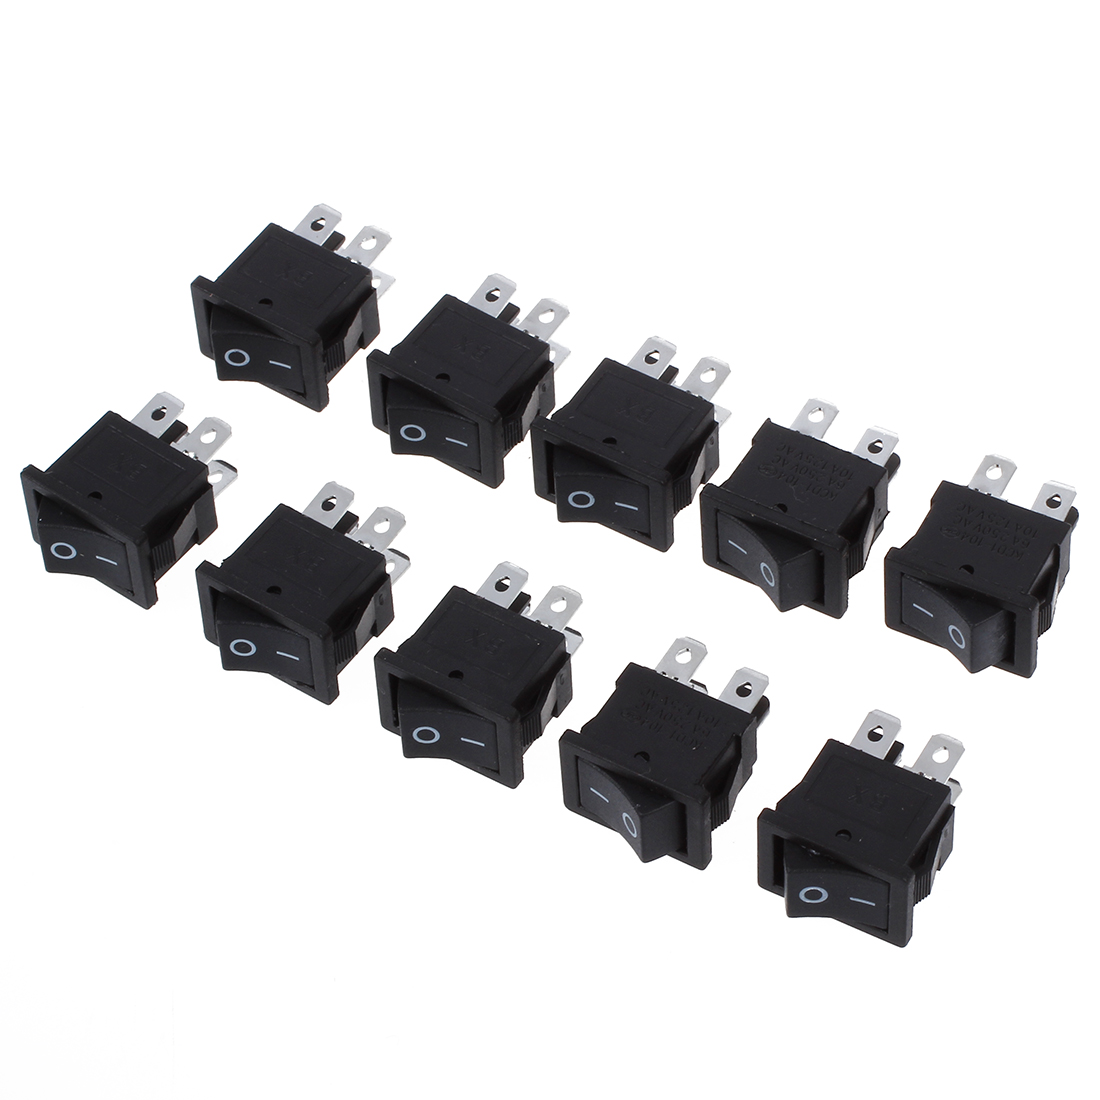 цена на 10 Pcs x 4 Pin On-Off 2 Position DPST Boat Rocker Switches 10A/125V 6A/250V AC